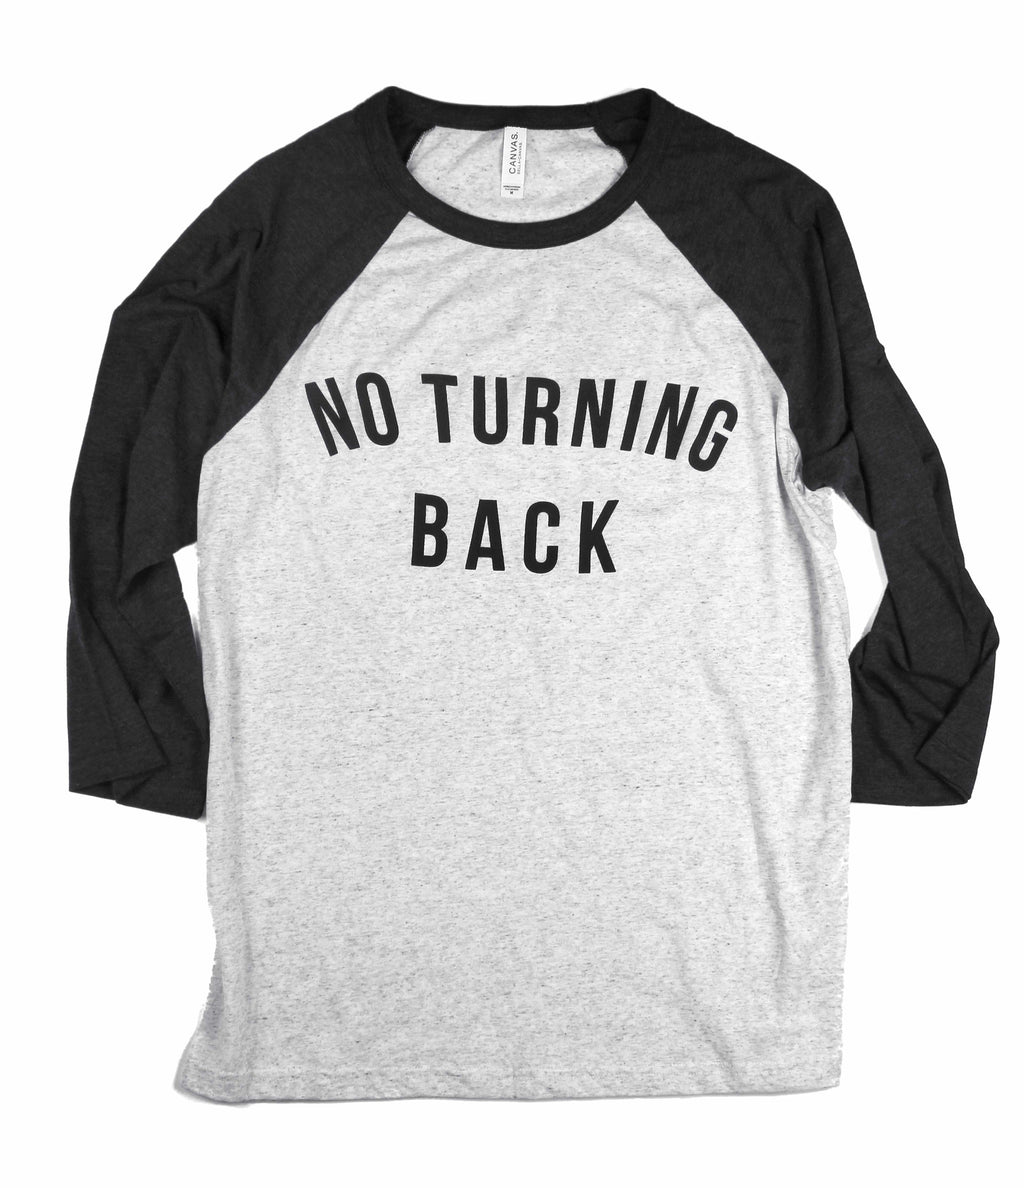 NO TURNING BACK RAGLAN BASEBALL T-SHIRT